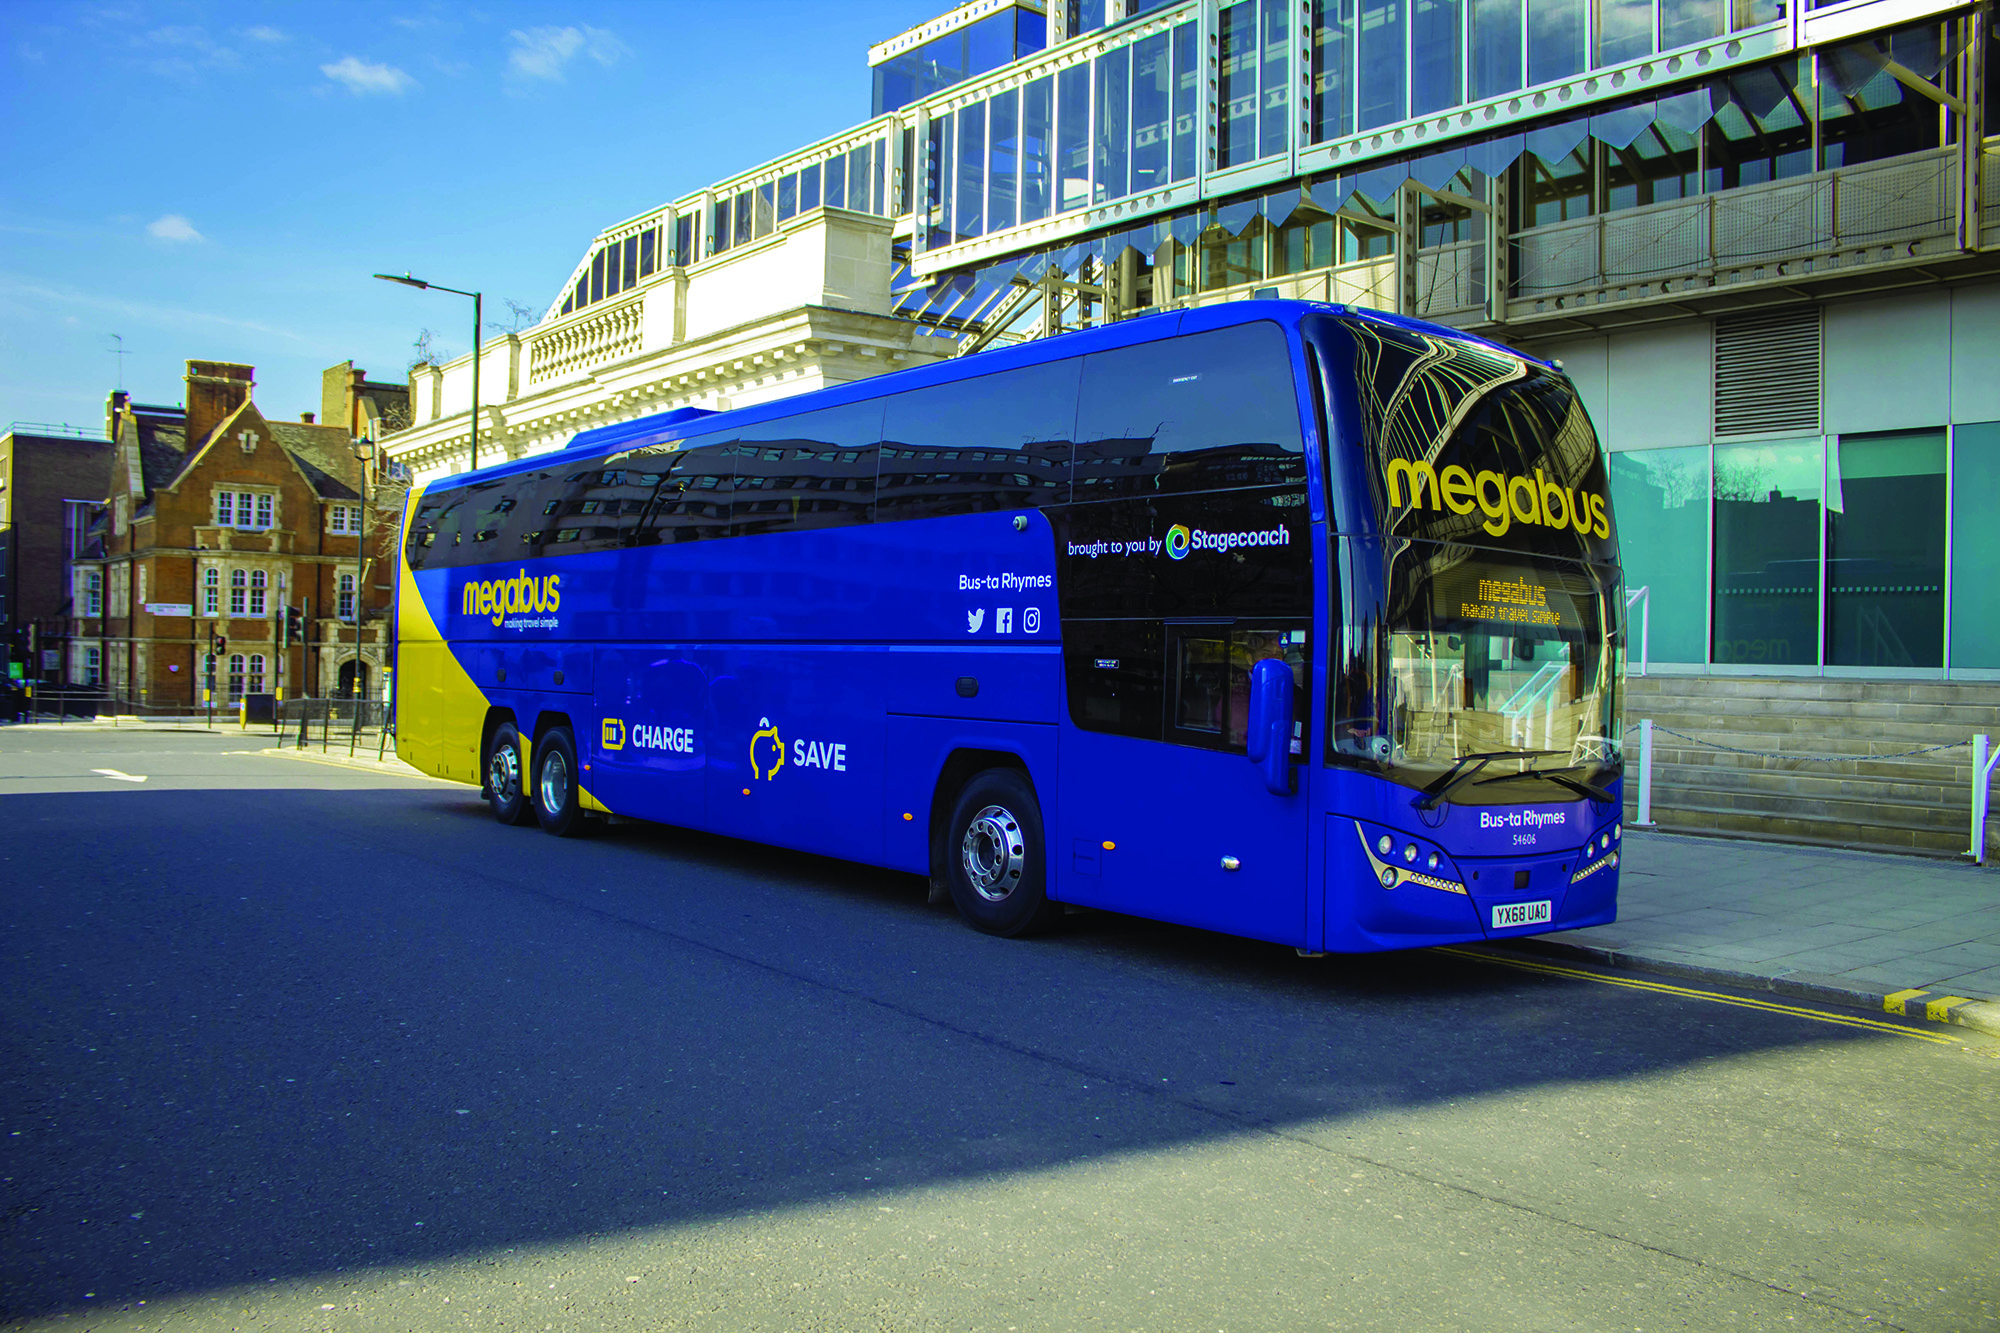 megabus teams up with Yellow Buses